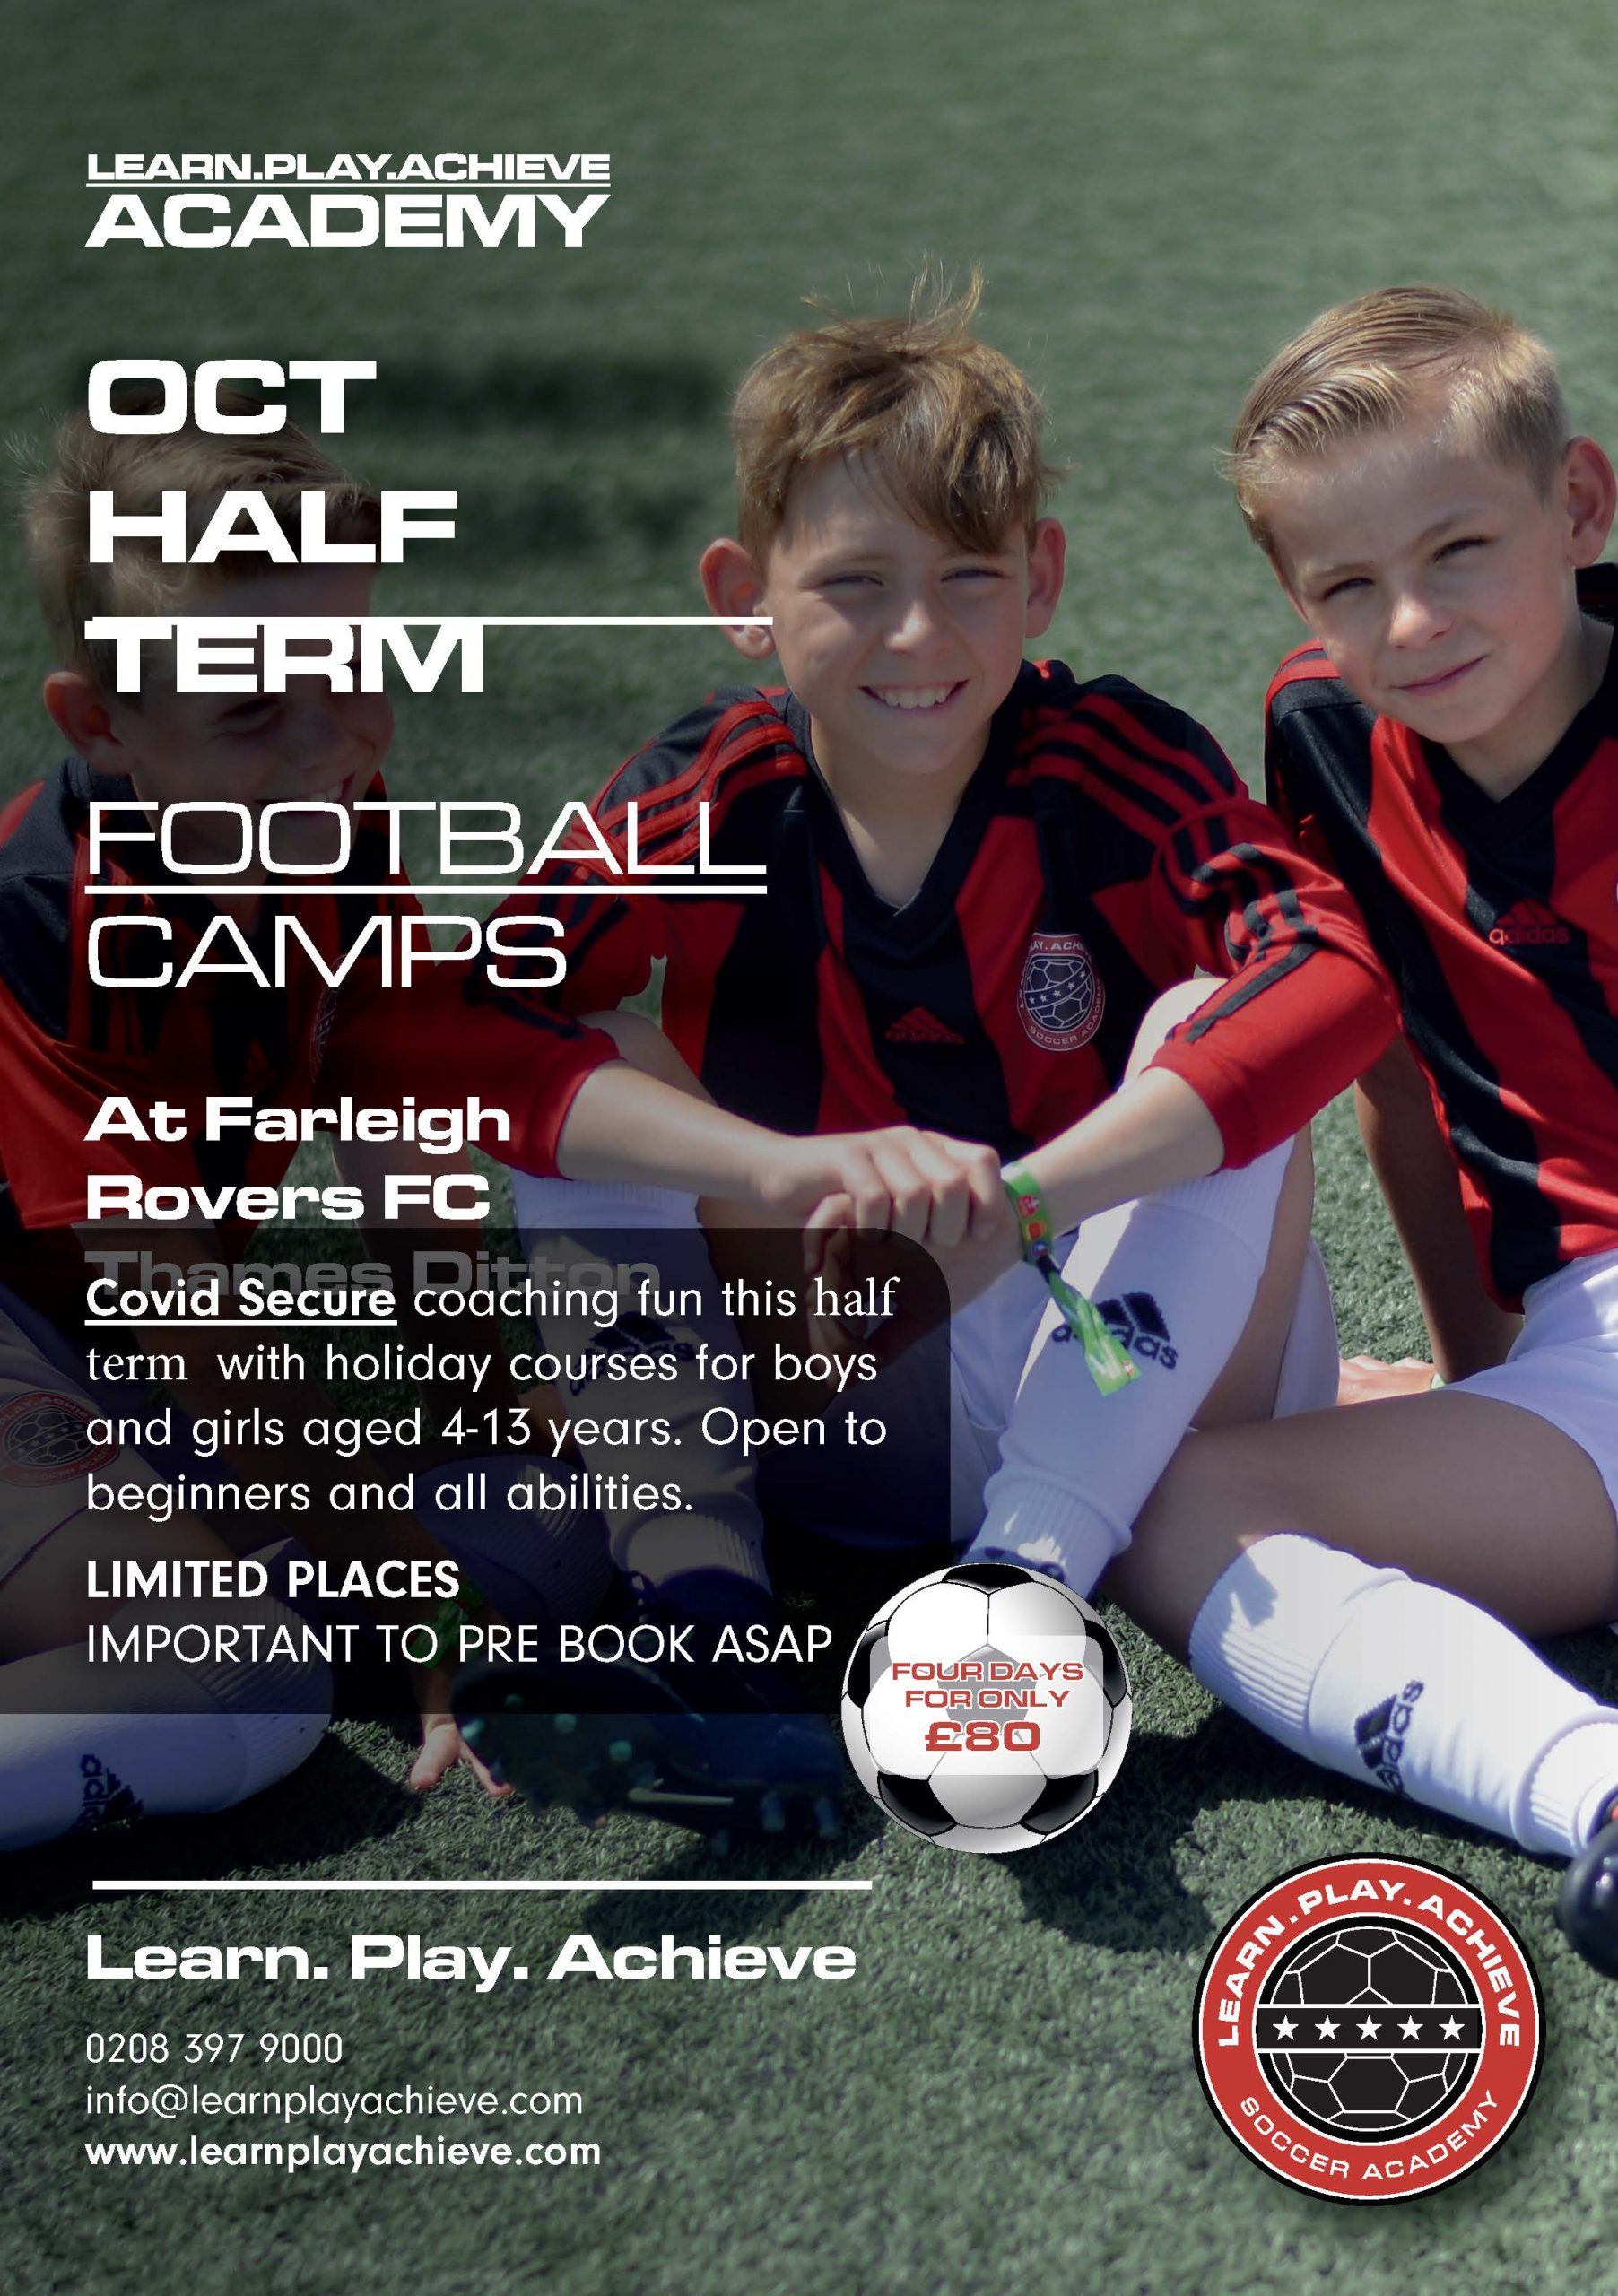 https://www.learnplayachieve.com/wp-content/uploads/2020/10/Farleigh-Rovers-Oct-Half-Term-Holiday-Camp_Page_1-scaled.jpg